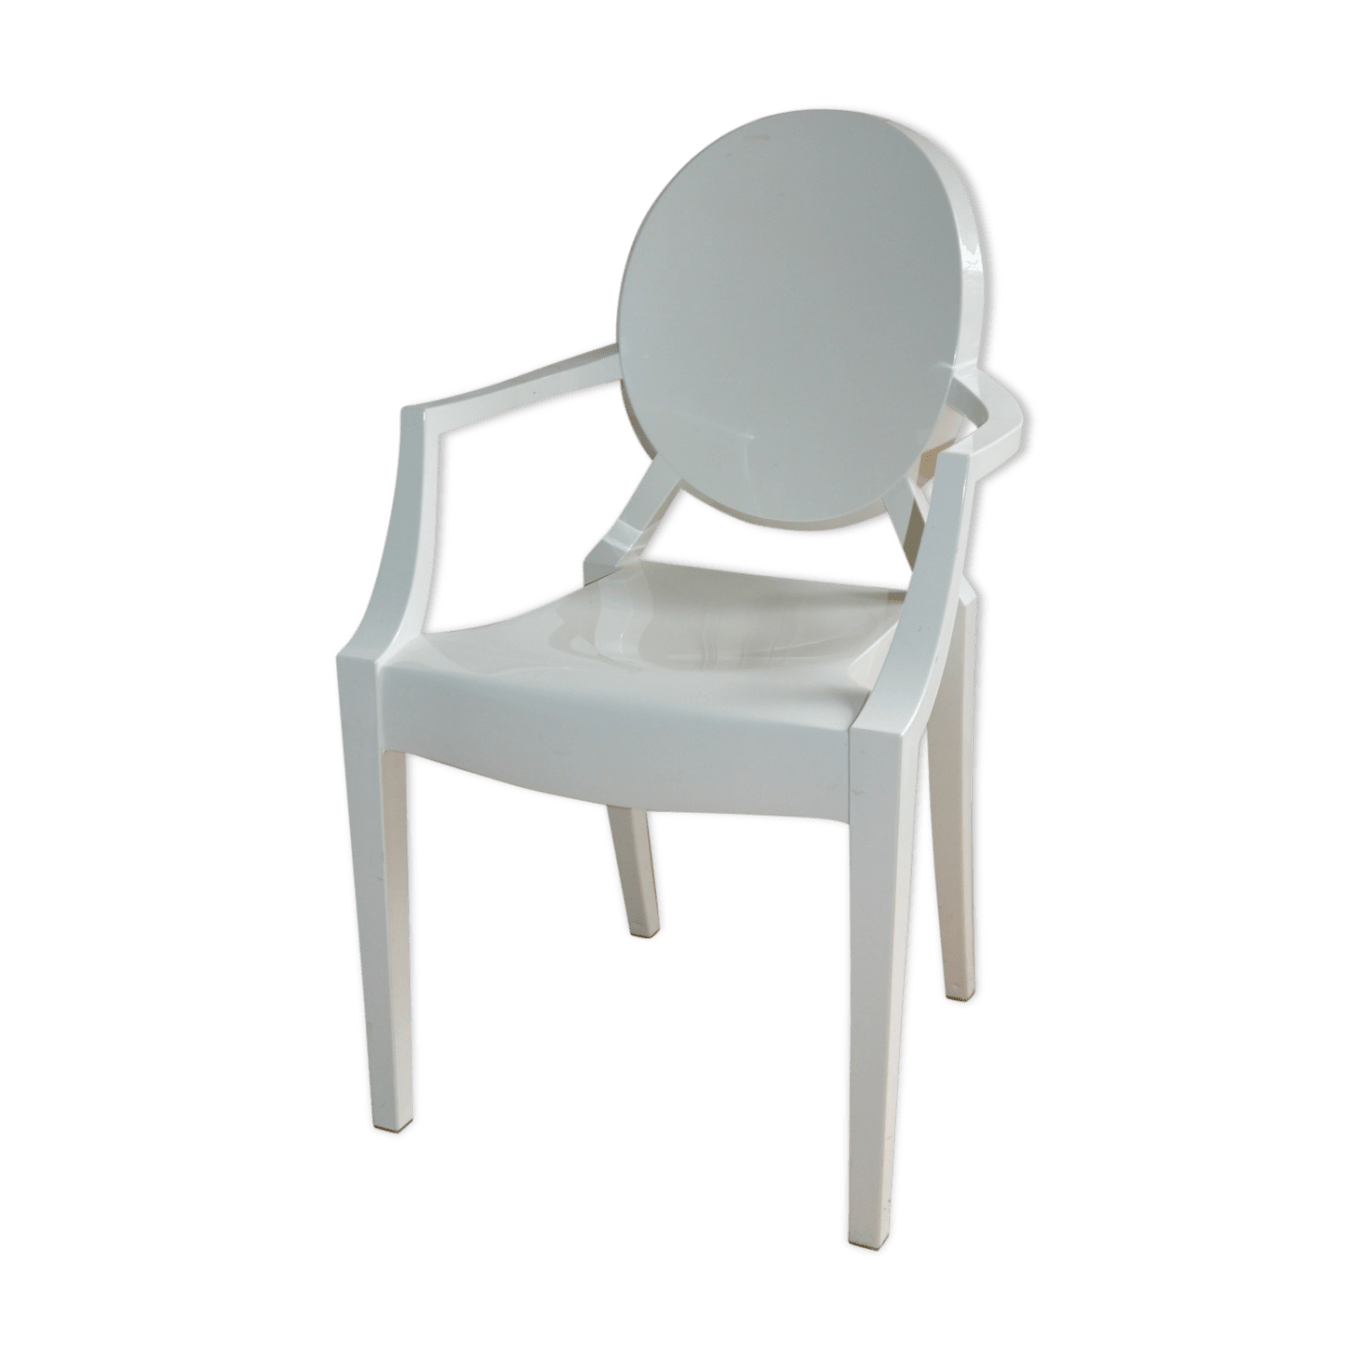 Fauteuil Ghost Chaises Louis Ghost Philippe Starck Oveetech